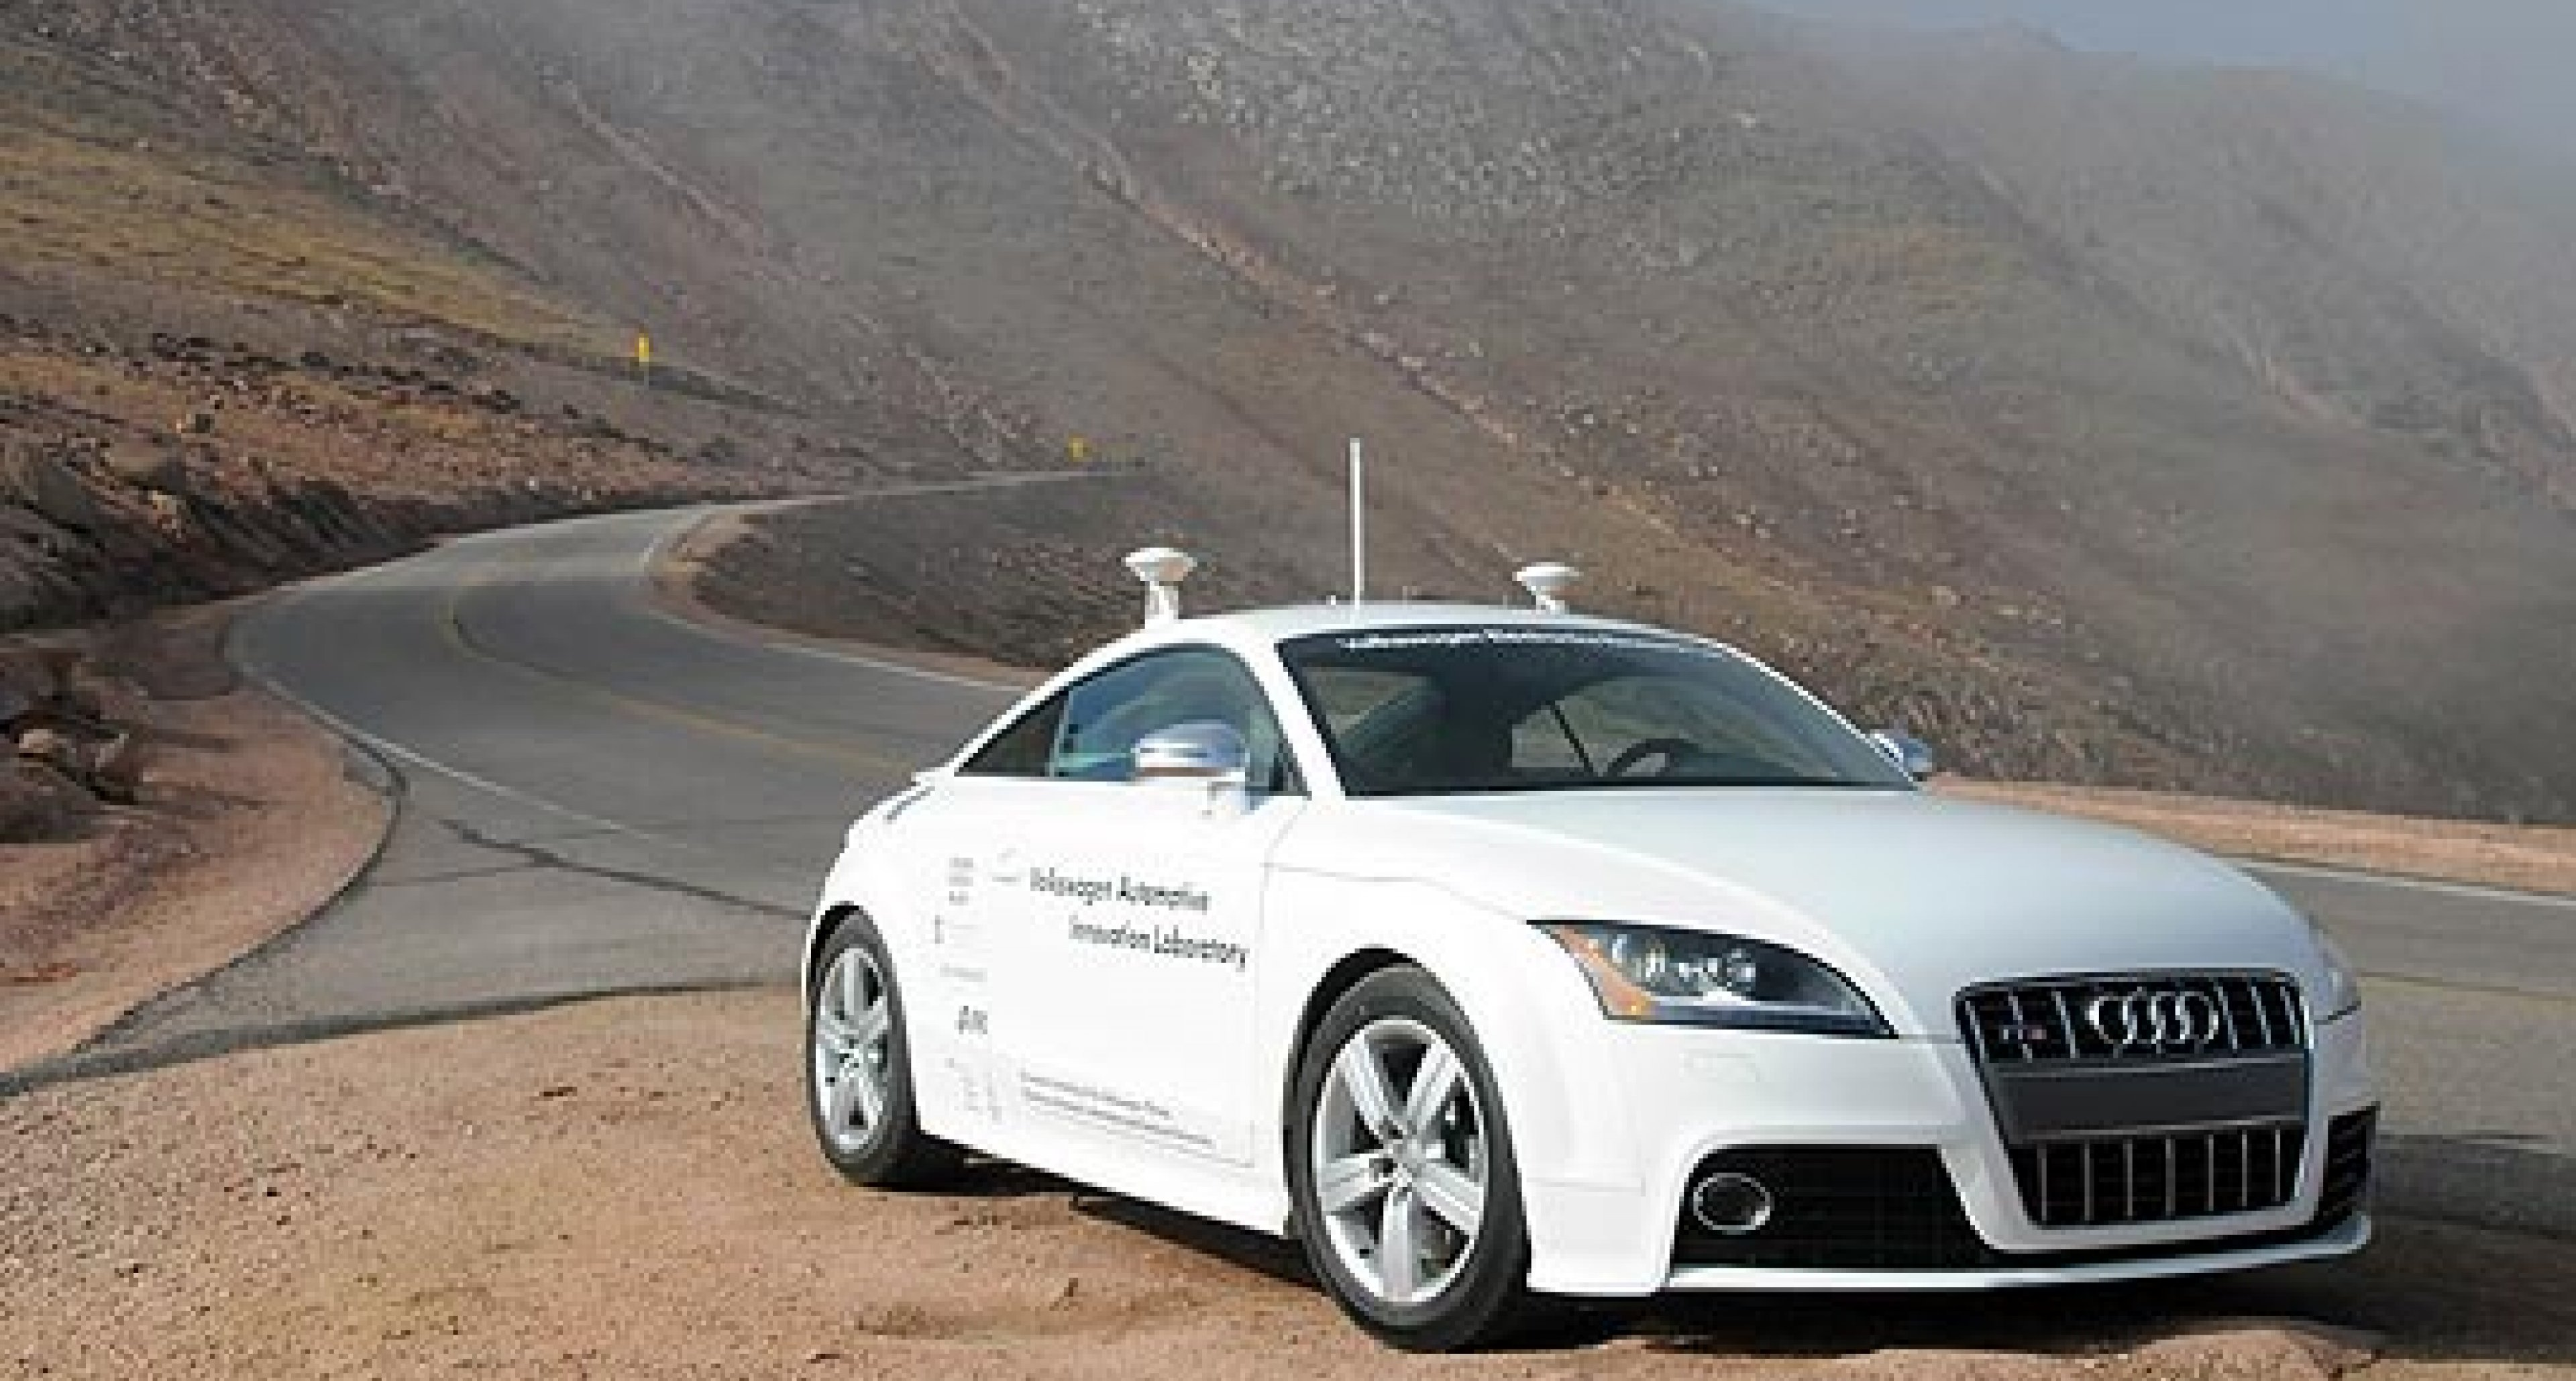 Audi Builds 'Driverless' Sports Car